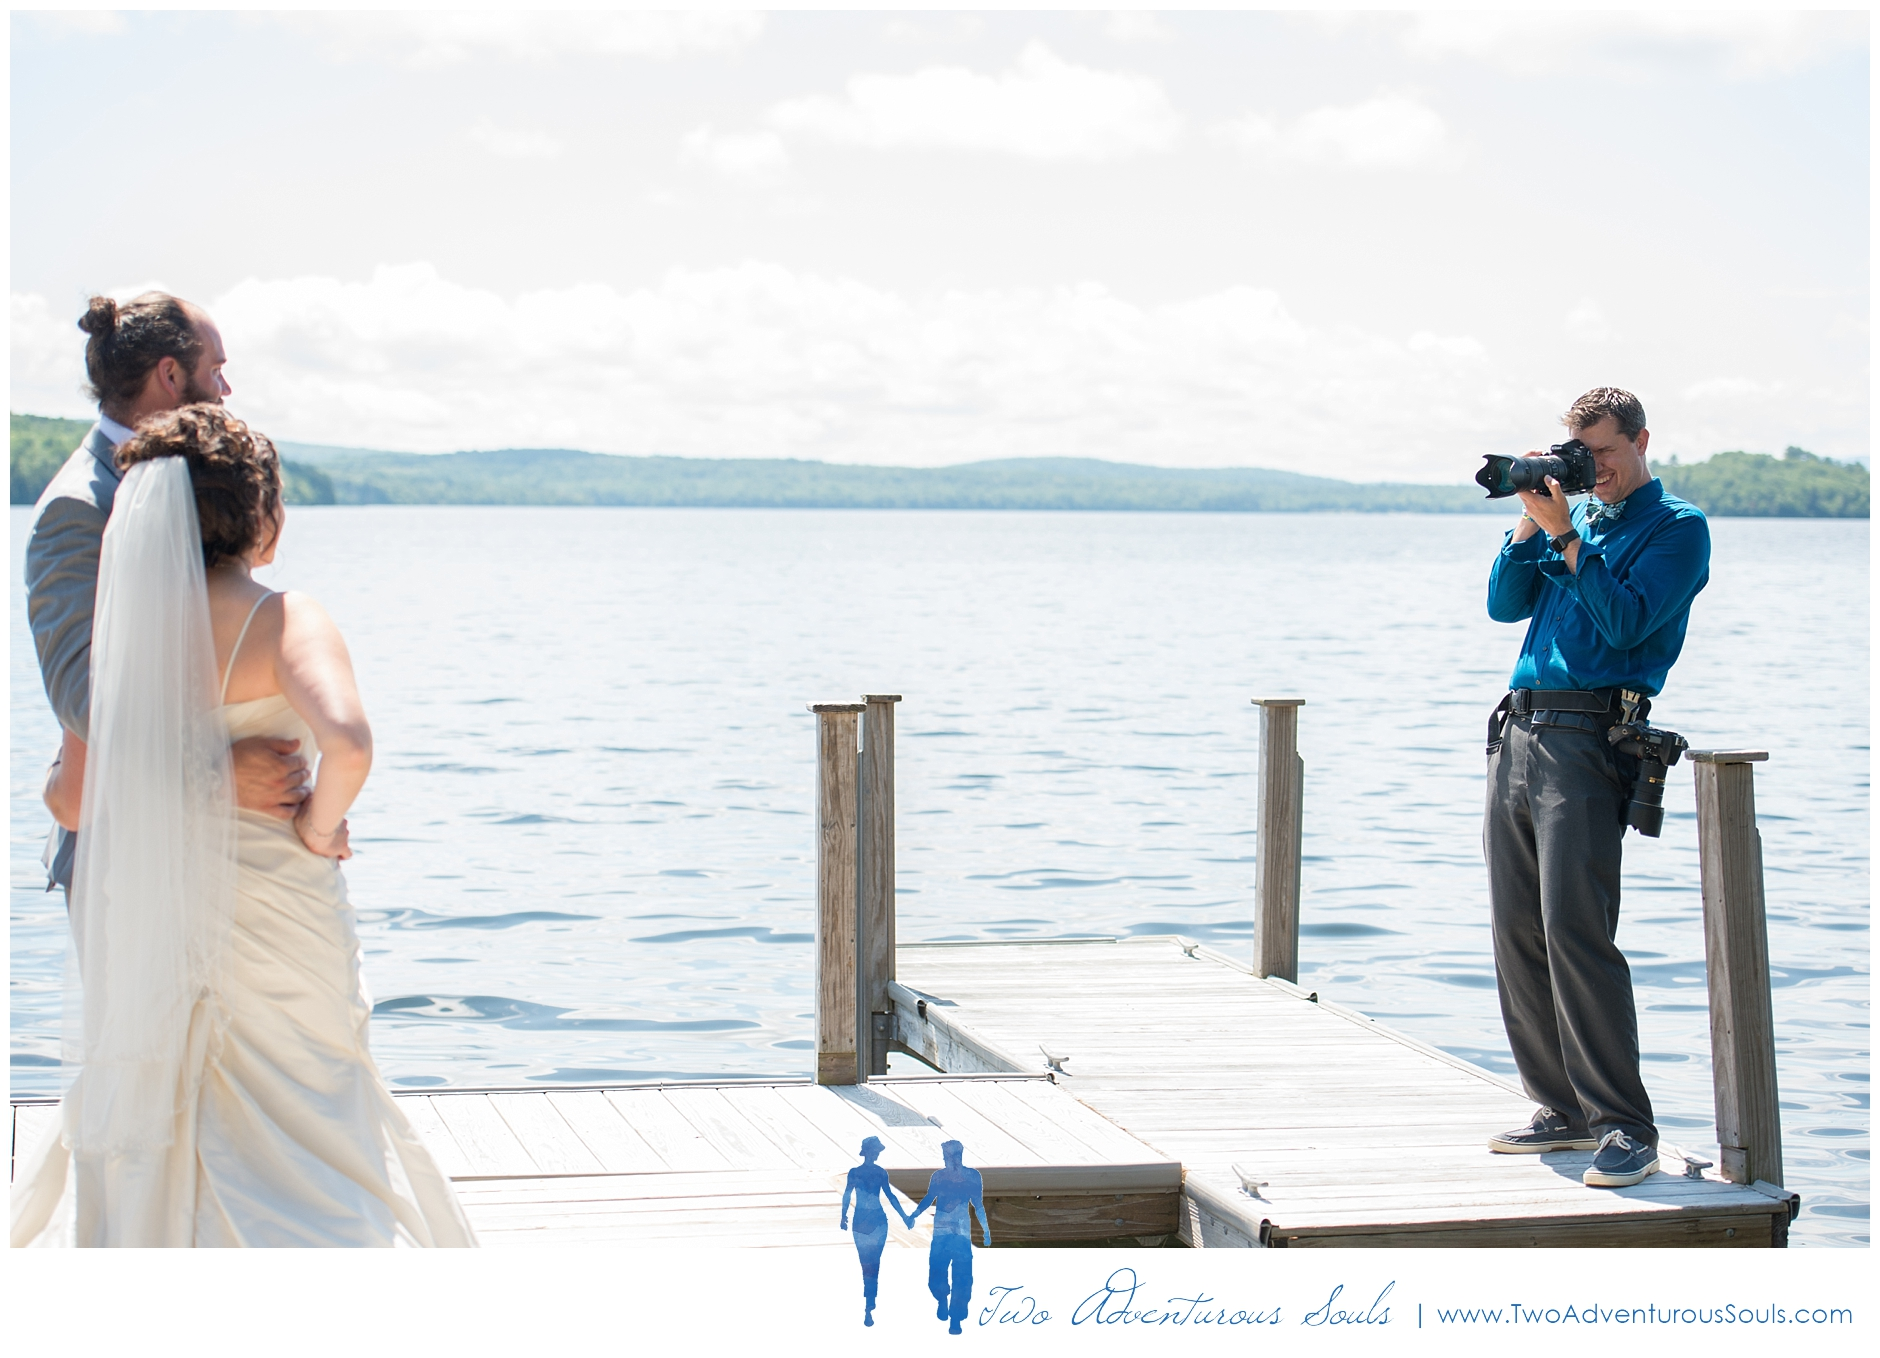 071517-Bess-Brendan-Outtakes-1_WEB-Maine-Wedding-and-Portrait-Photographer.jpg